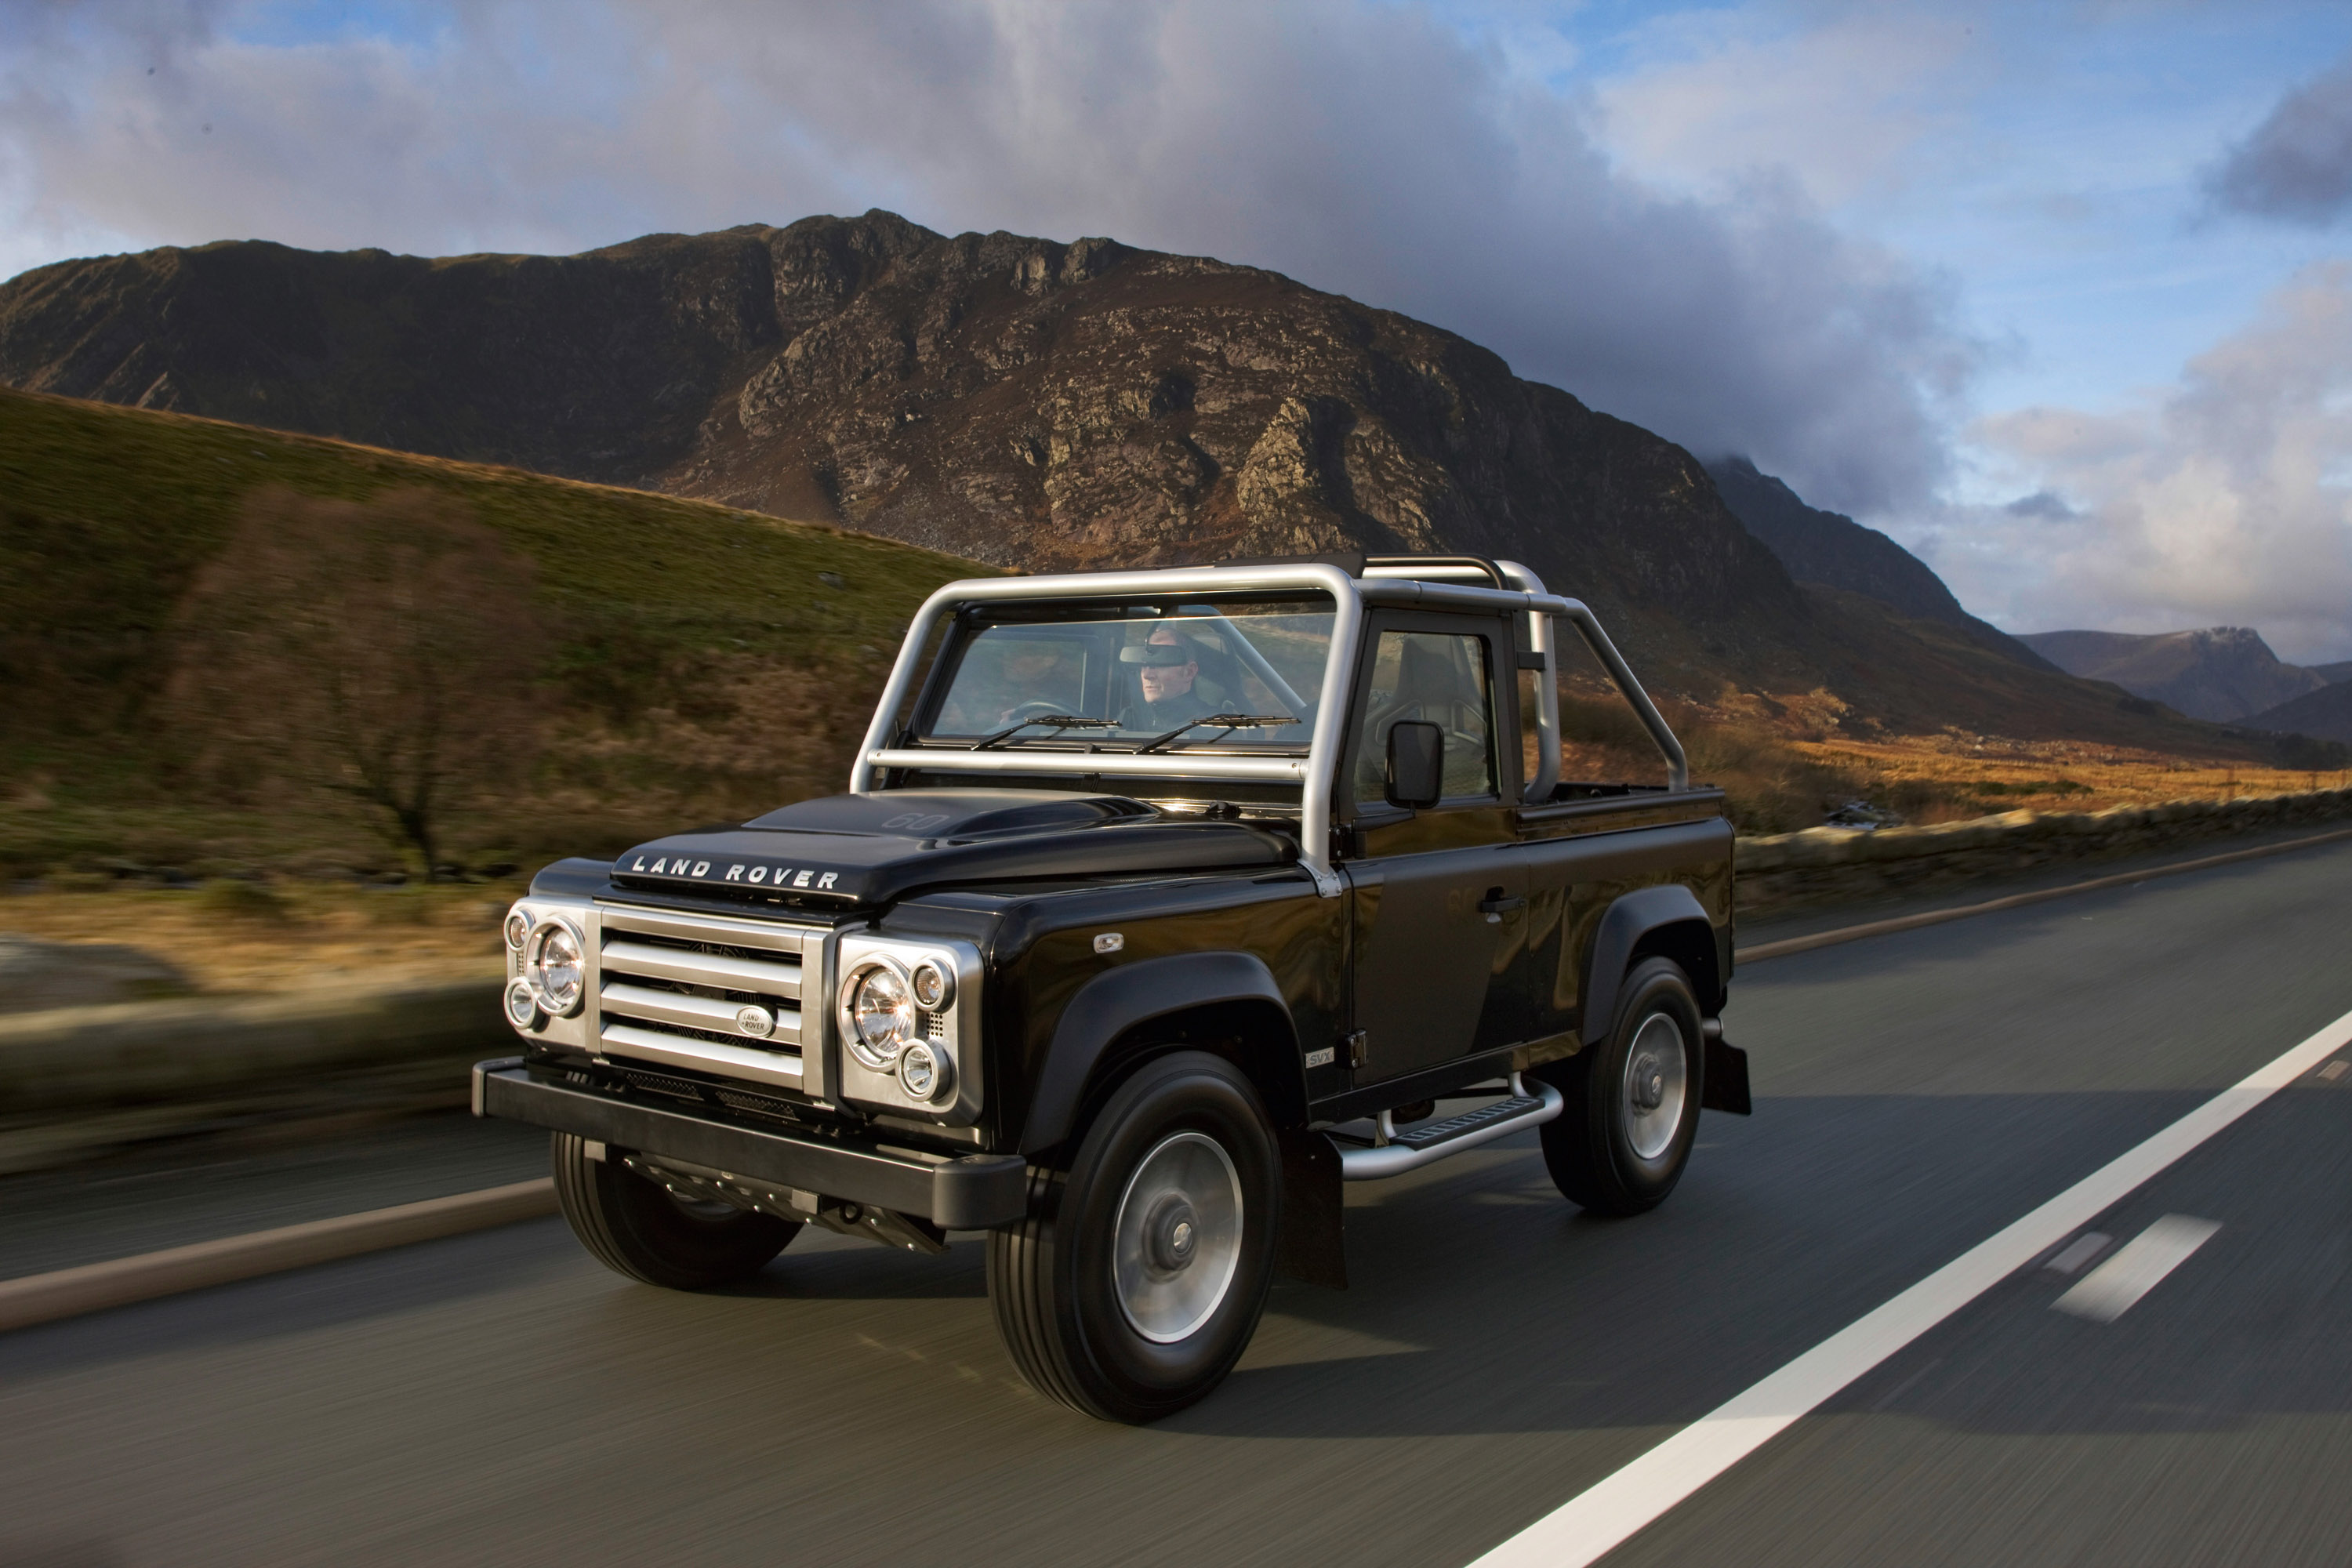 https://www.carsinvasion.com/gallery/2008-land-rover-defender-svx/2008-land-rover-defender-svx-04.jpg